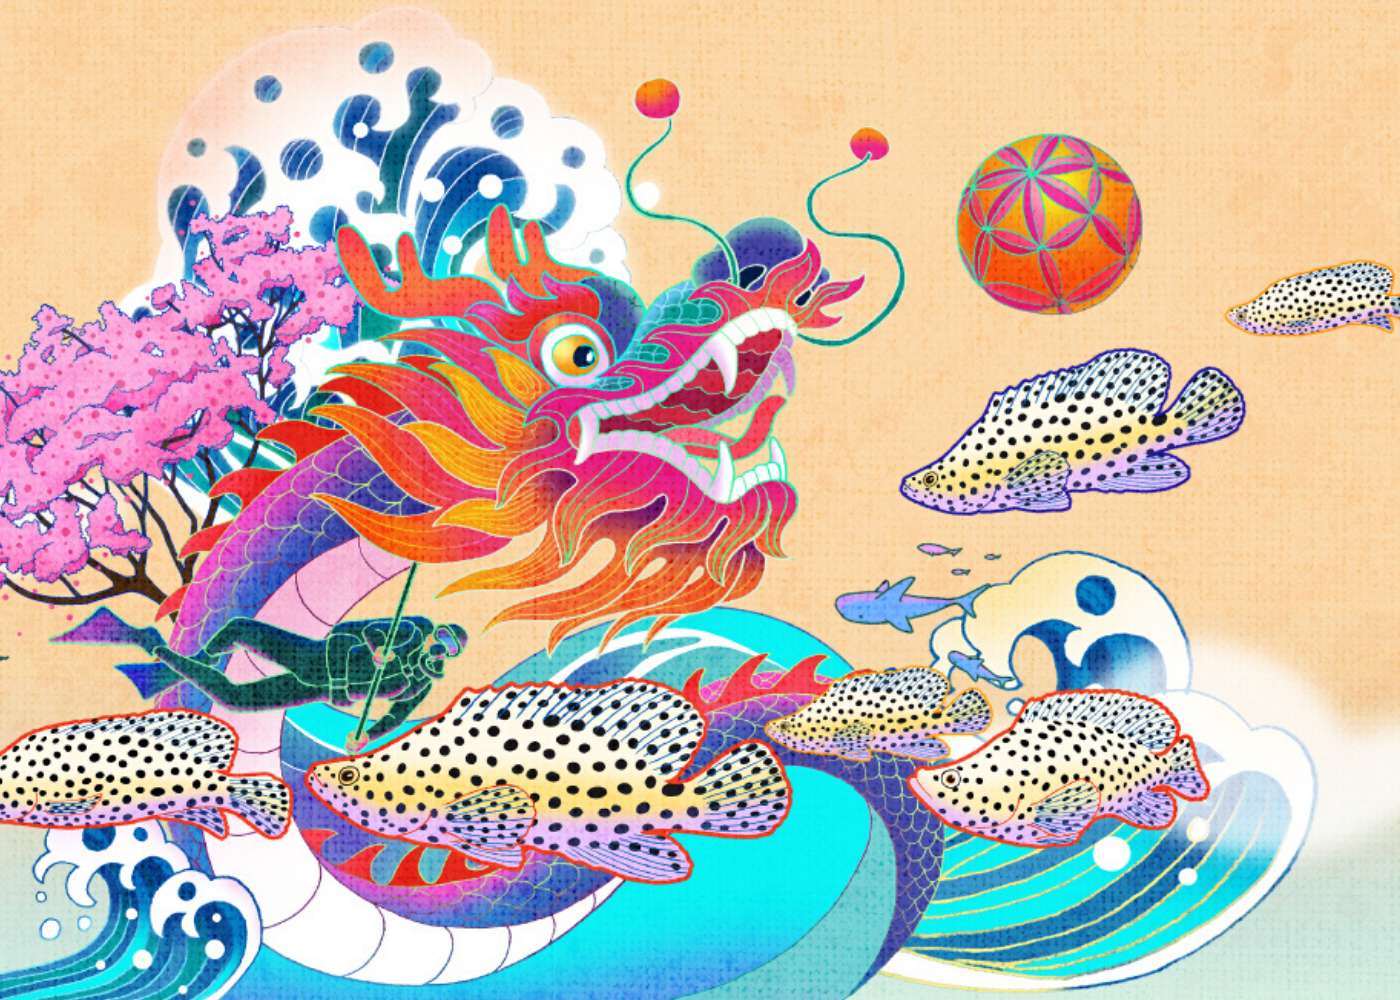 Abundance in the Sea Chinese New Year events 2020